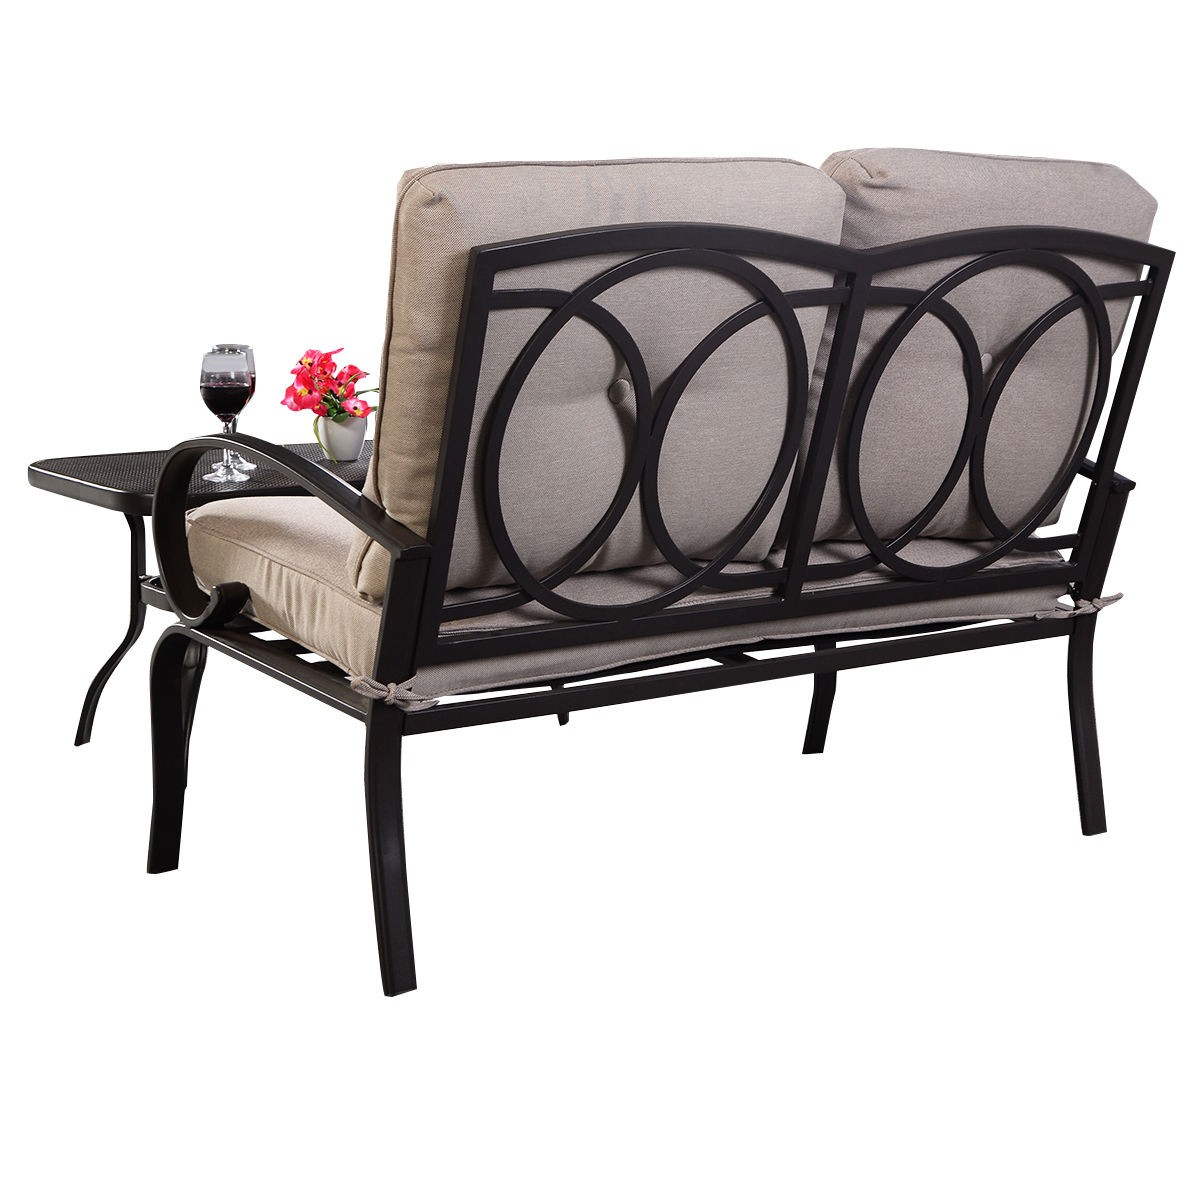 2 Pcs Patio Outdoor Loveseat Coffee Table Set Furniture Bench With Cushion Ebay